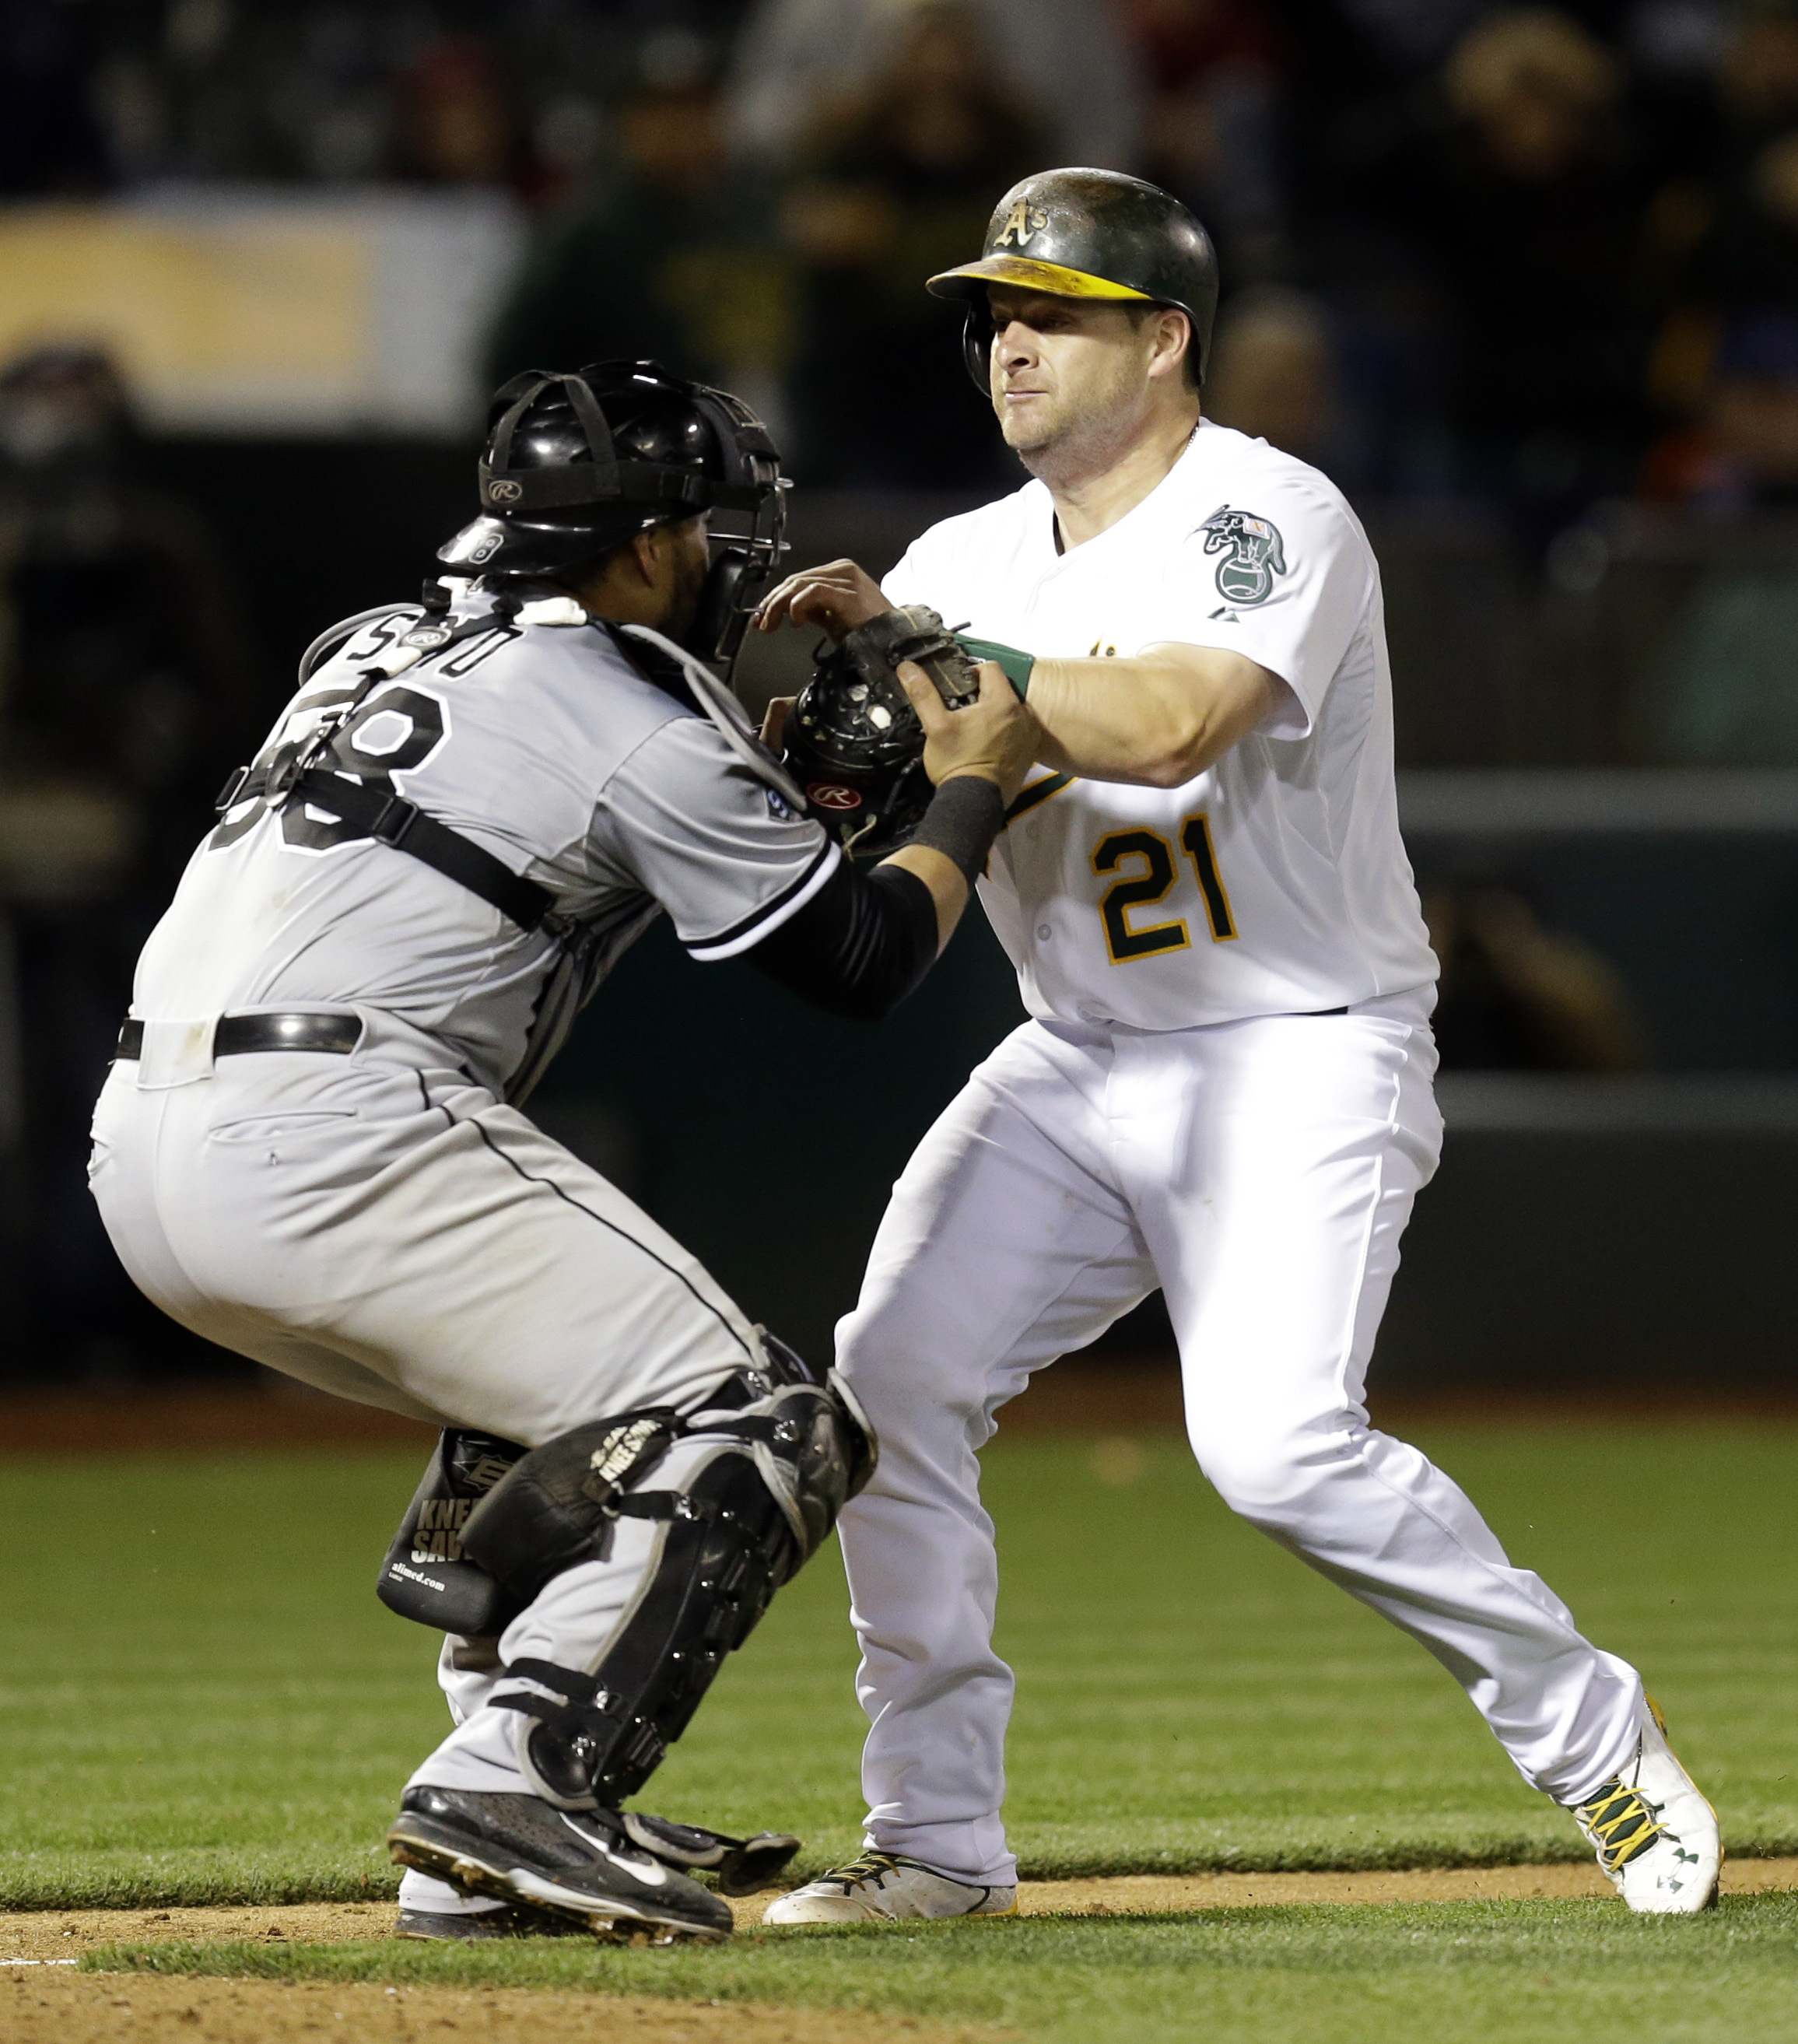 Oakland Athletics' Stephen Vogt, right, is tagged out at home plate by Chicago White Sox catcher Geovany Soto in the ninth inning of a baseball game Friday, May 15, 2015, in Oakland, Calif. Chicago won 7-6. (AP Photo/Ben Margot)